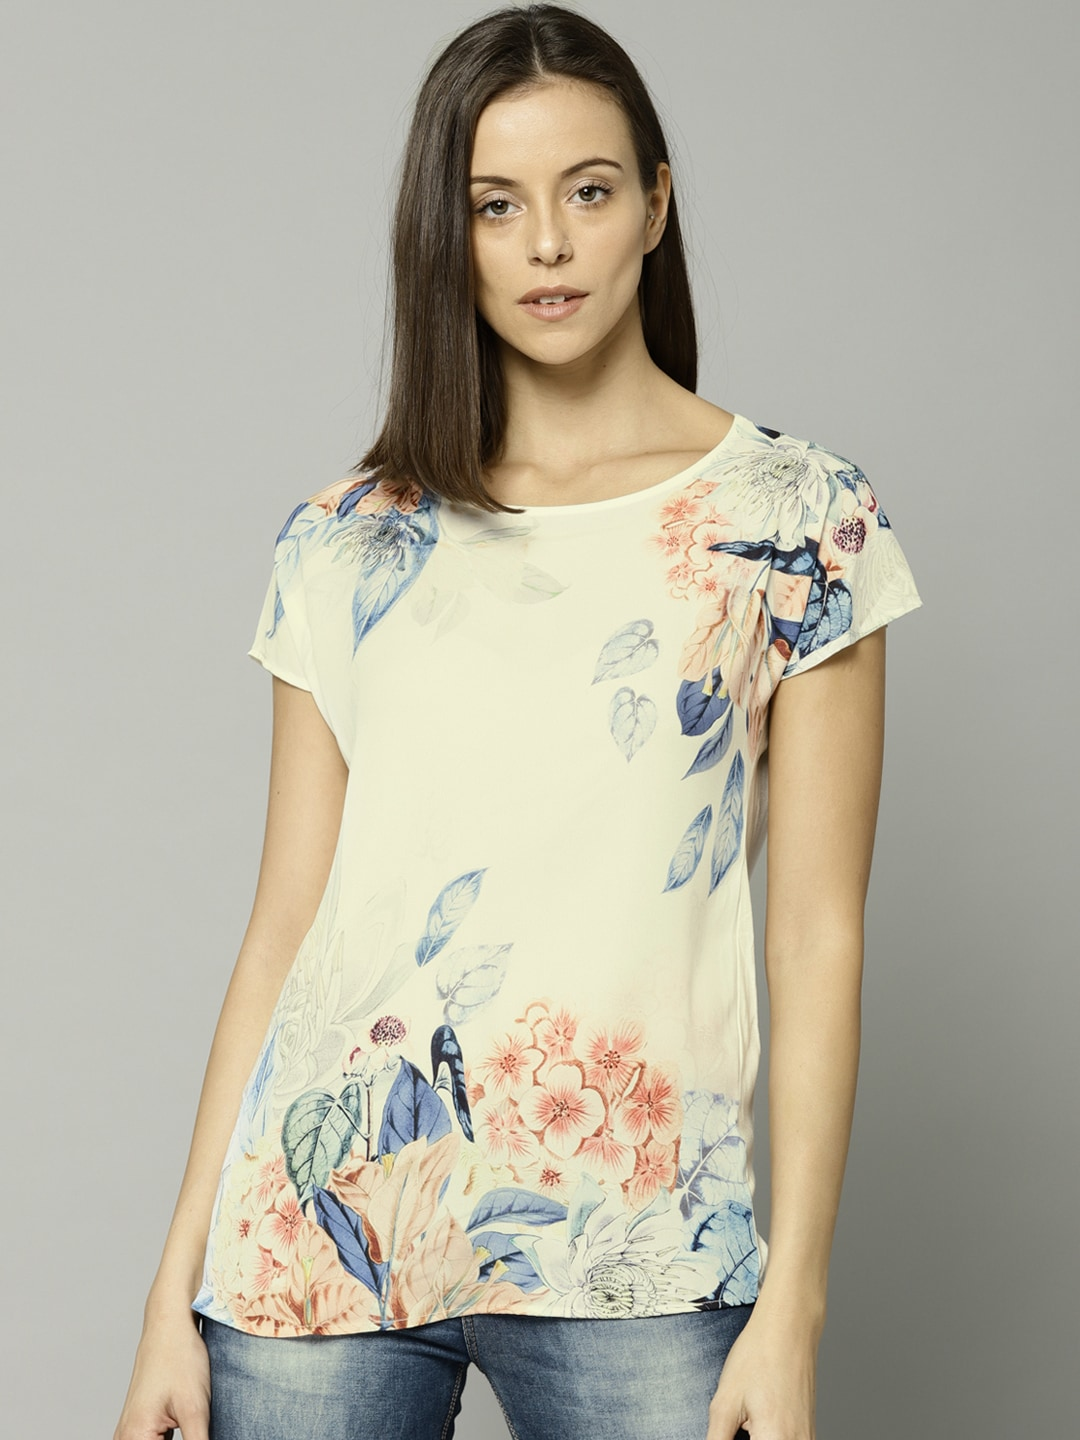 Marks and Spencer Clothing - Buy M S Men   Women Clothing Online - Myntra 005332b99